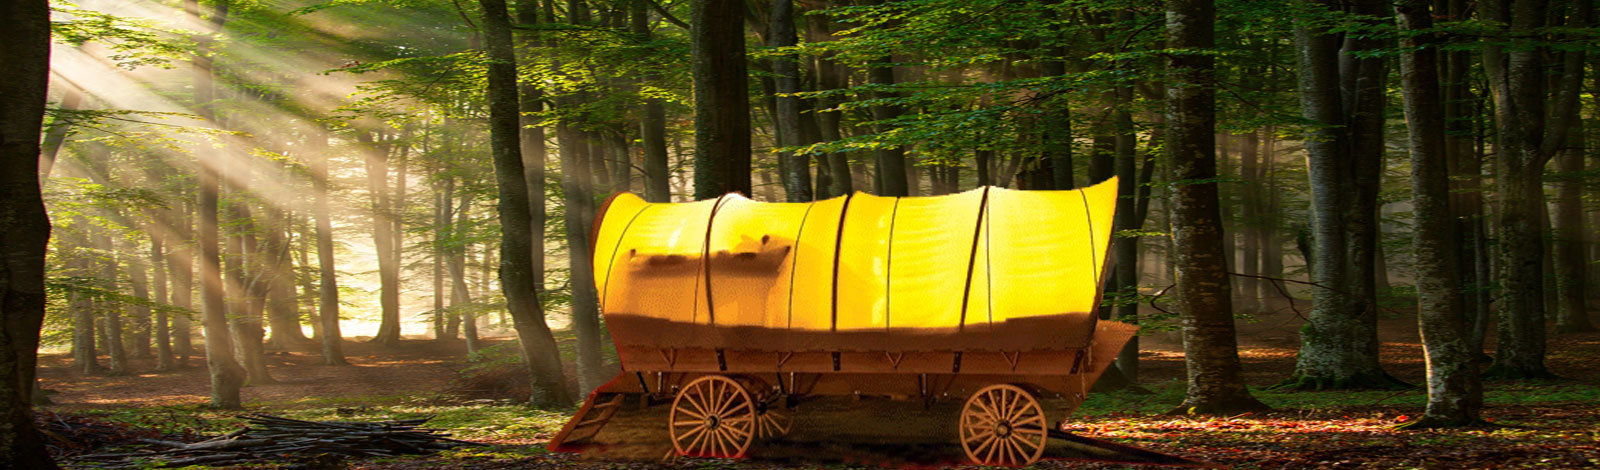 Best Glamping Destinations Wagon